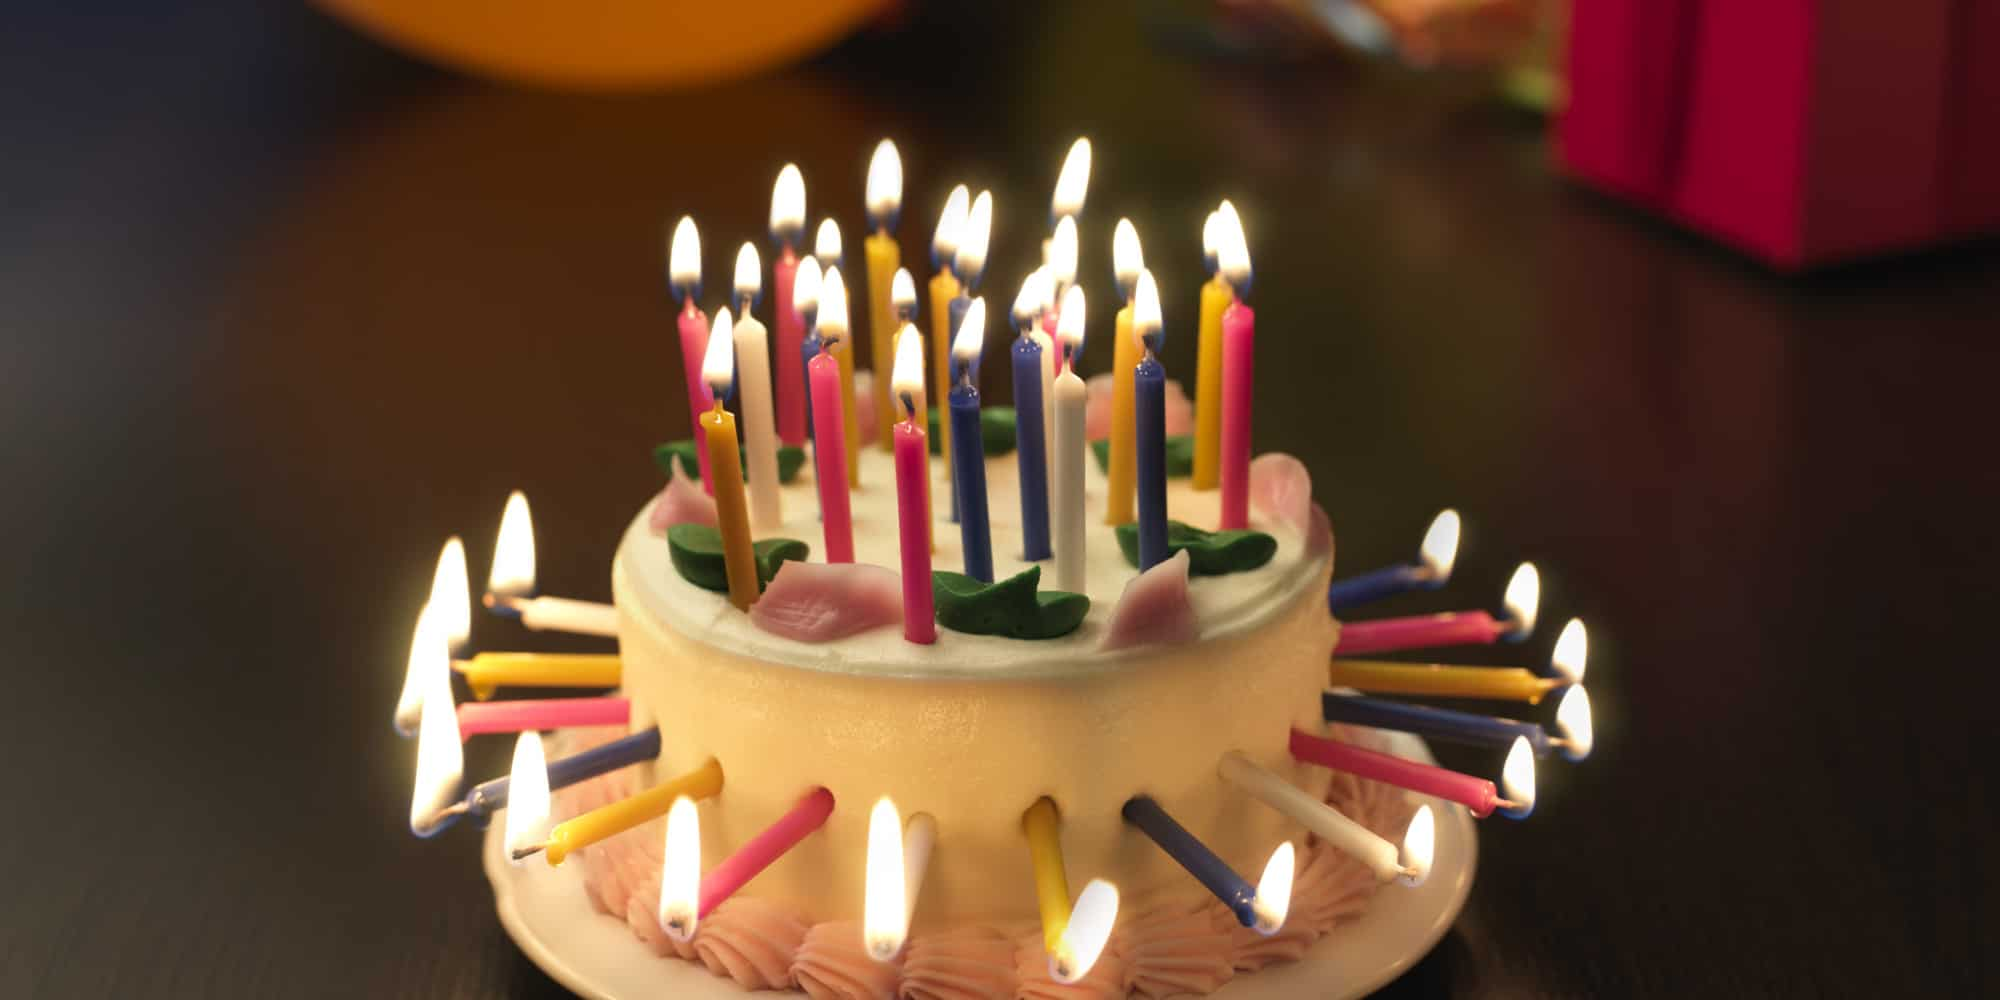 Birthday Cake With Many Candles